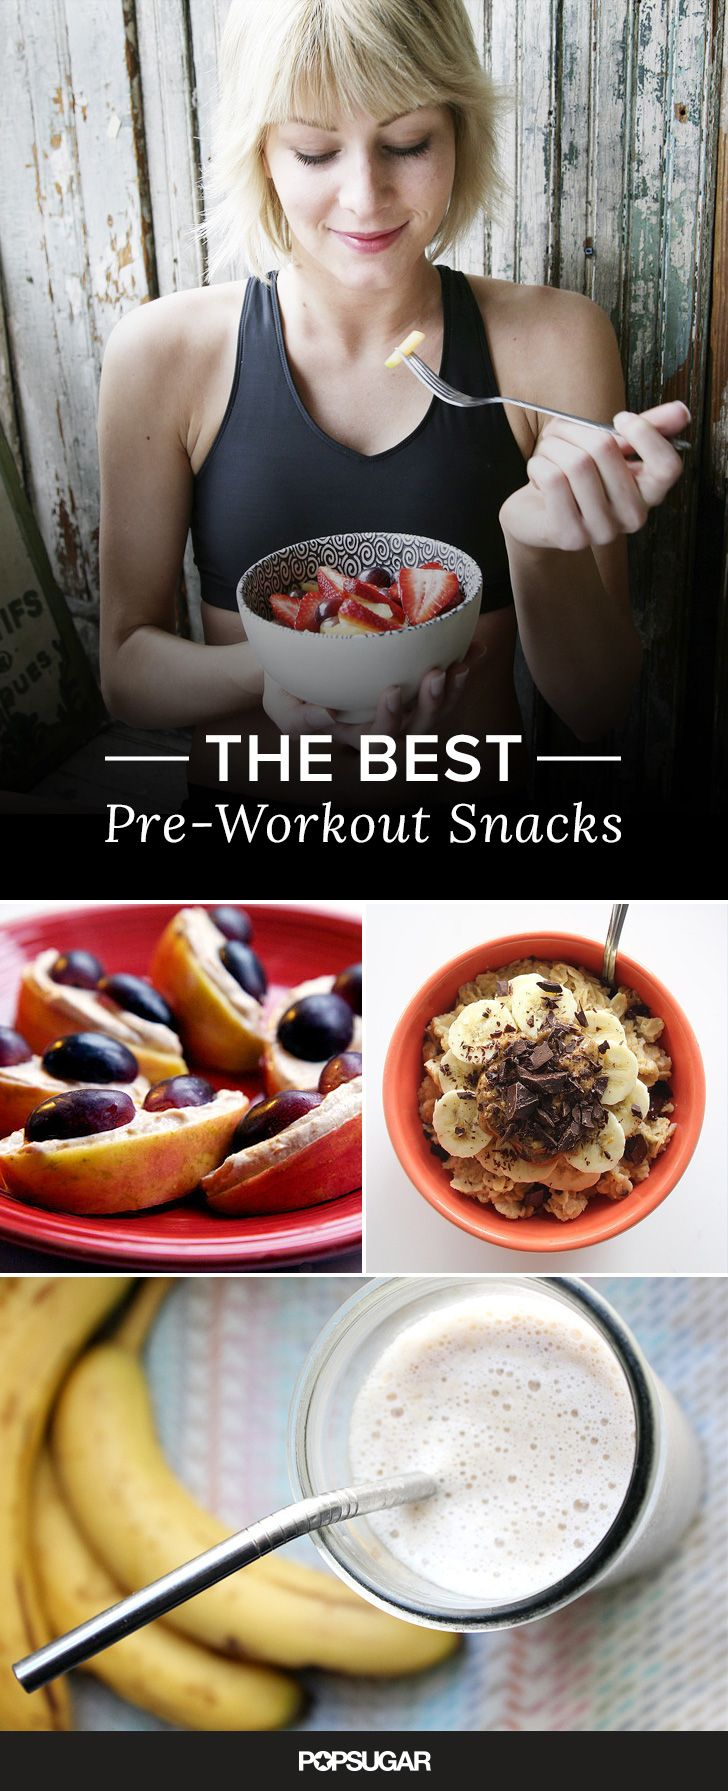 The best snacks to fuel your workout snacks ideas sensitivity and the best snacks to fuel your workout snacks ideas sensitivity and snacks solutioingenieria Choice Image